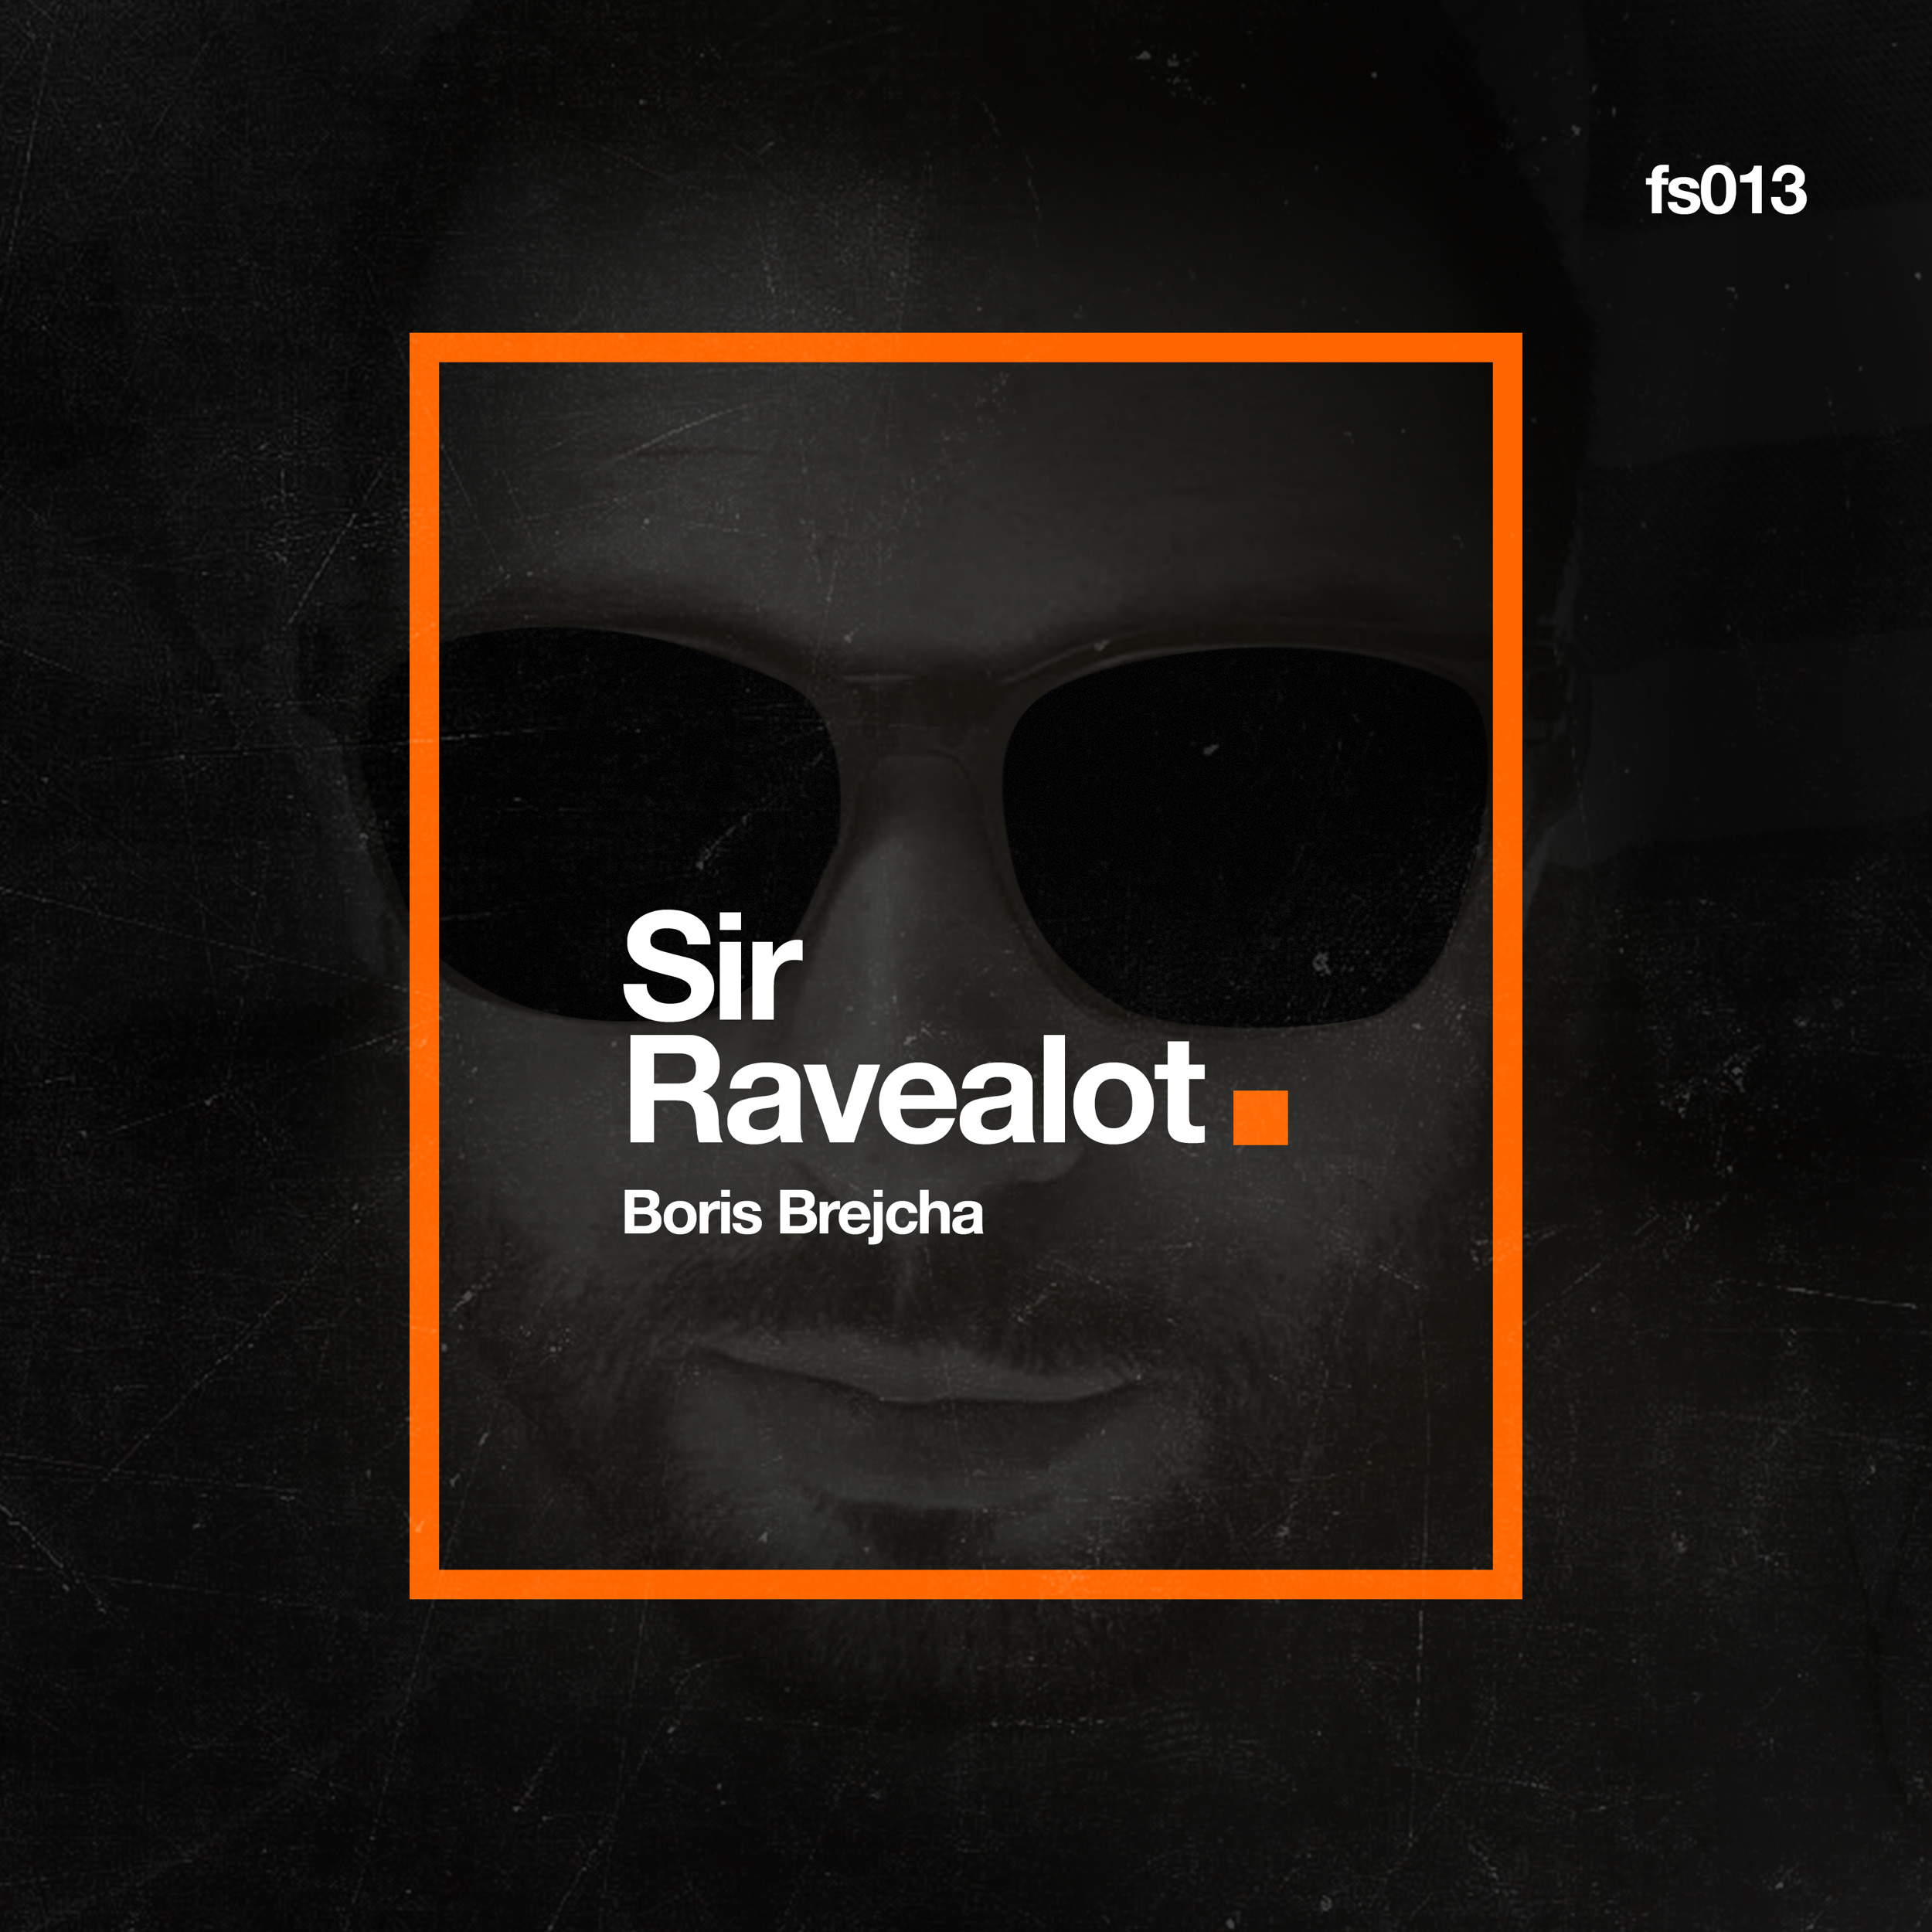 SIR RAVEALOT - BORIS BREJCHAIt´s dark, almost 7am in the morning but we are still raving. Boris Brejcha is ready to rumble with a special one called